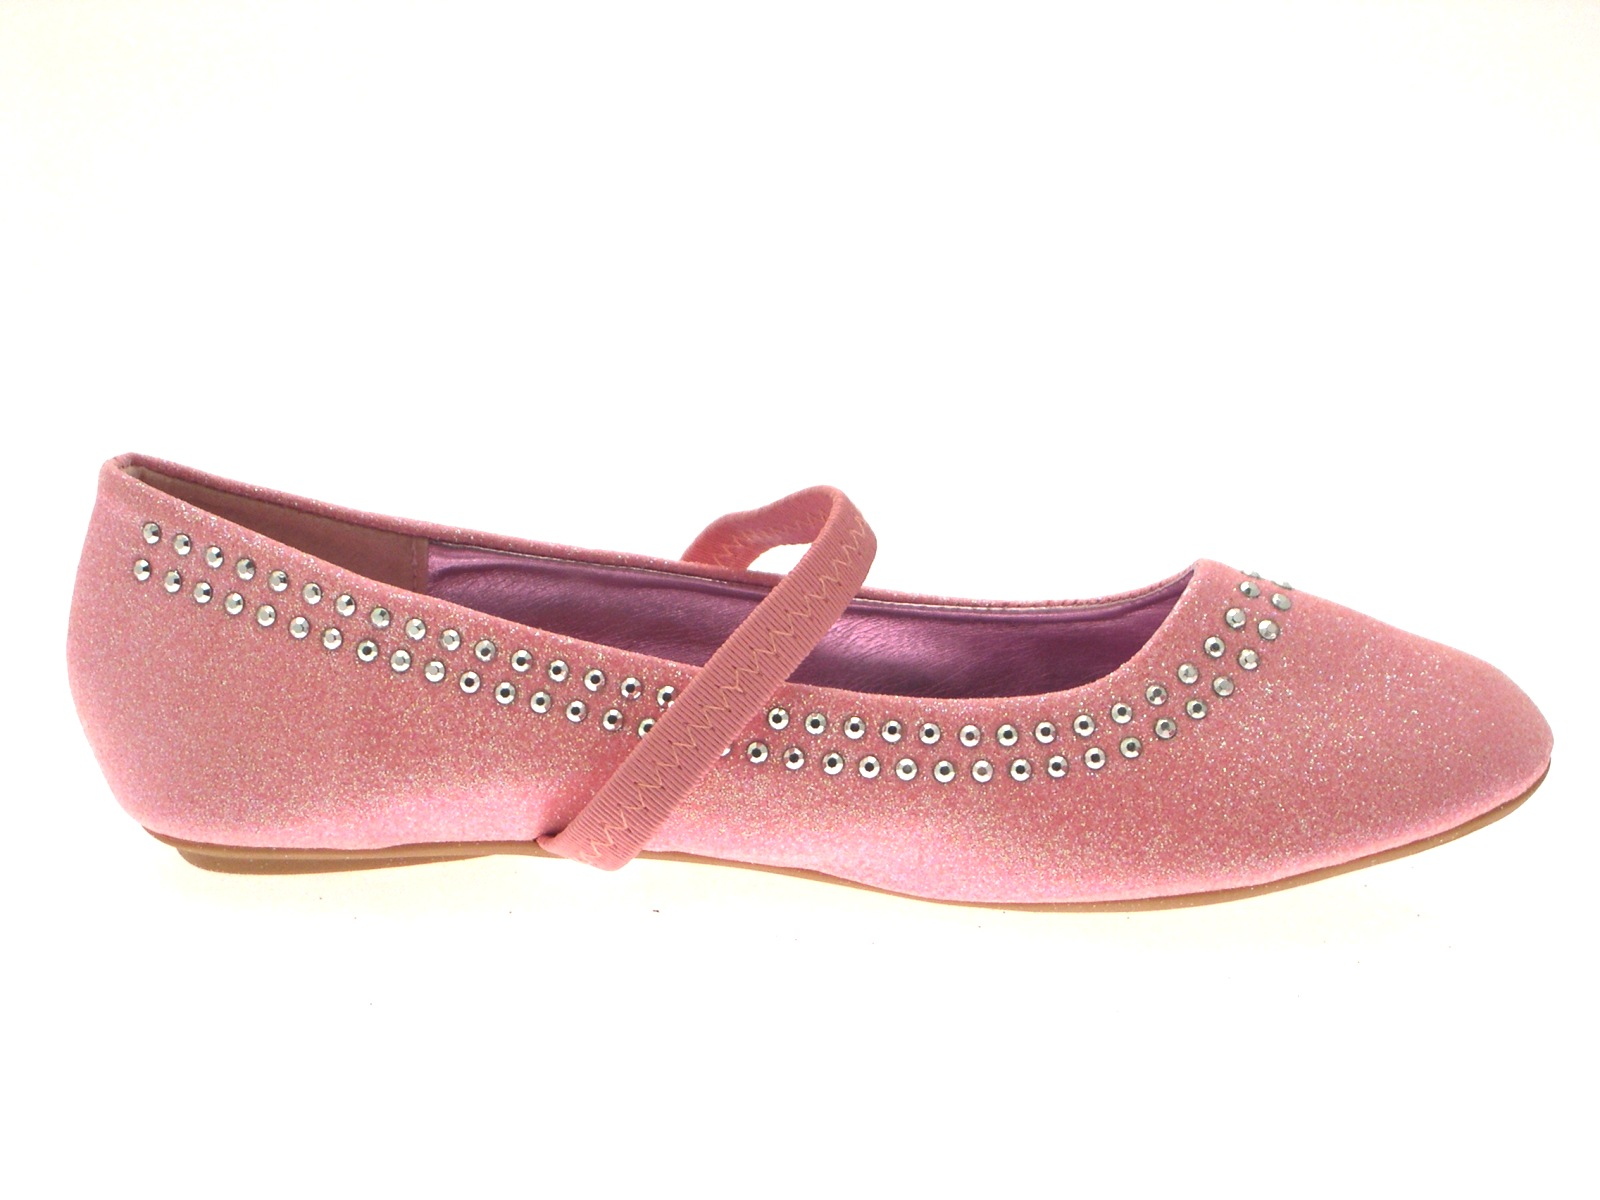 Girls Glitter Studded Party Shoes Mary Janes Flat Ballet Pumps Kids